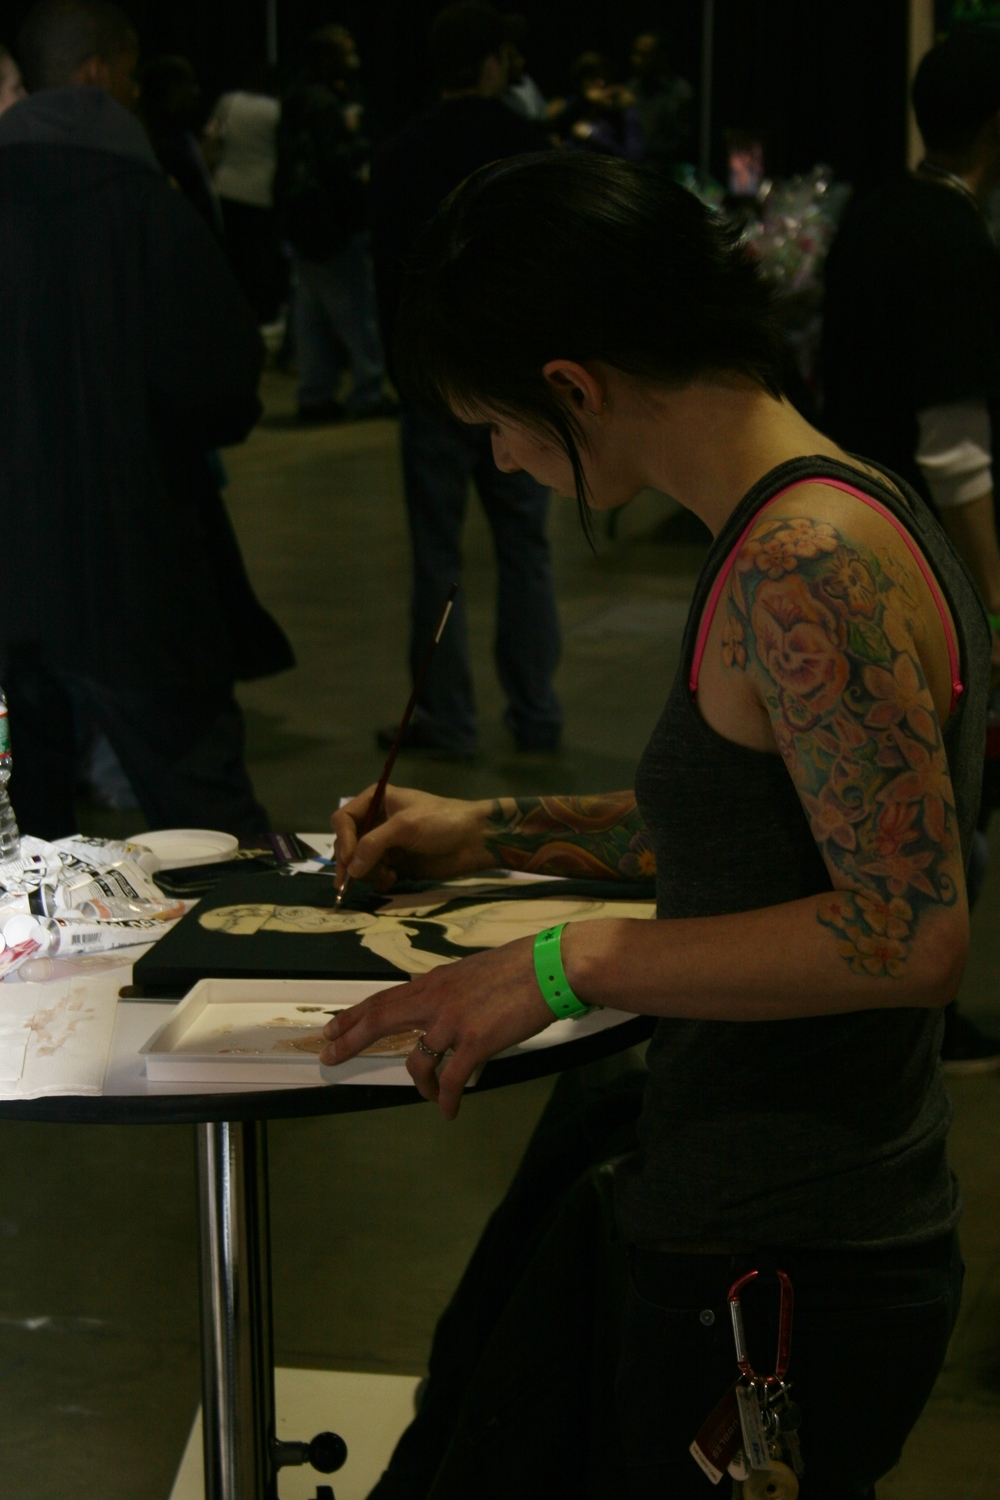 Live painting at the Philadelphia Tattoo Convention. 2013.